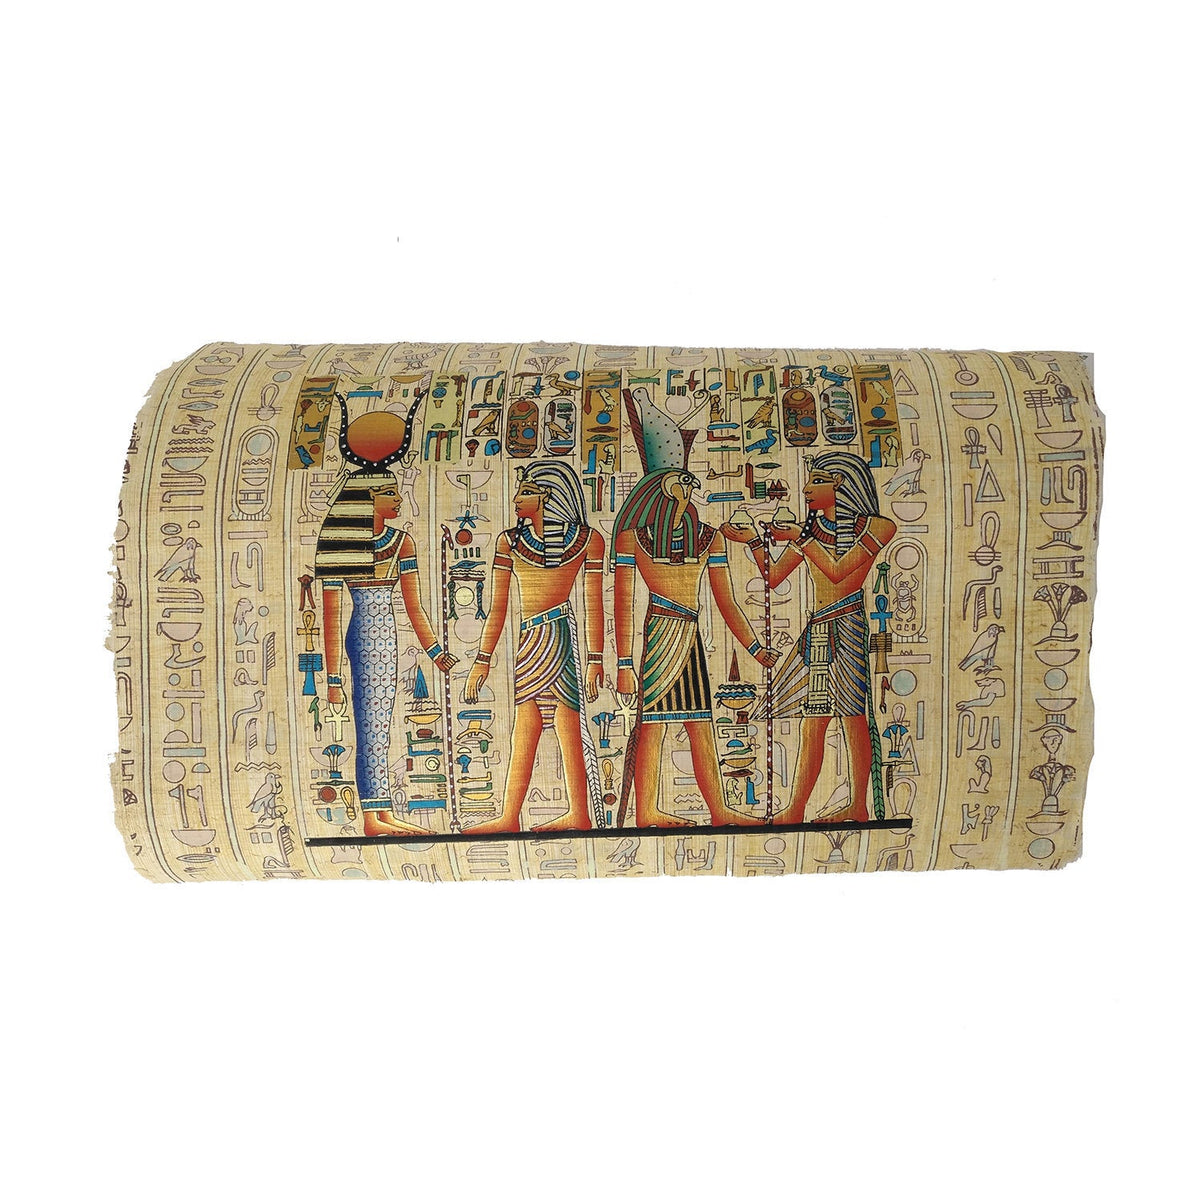 Ramses II making Offerings to Isis & Horus - Hieroglyphic Back - 20x30cm